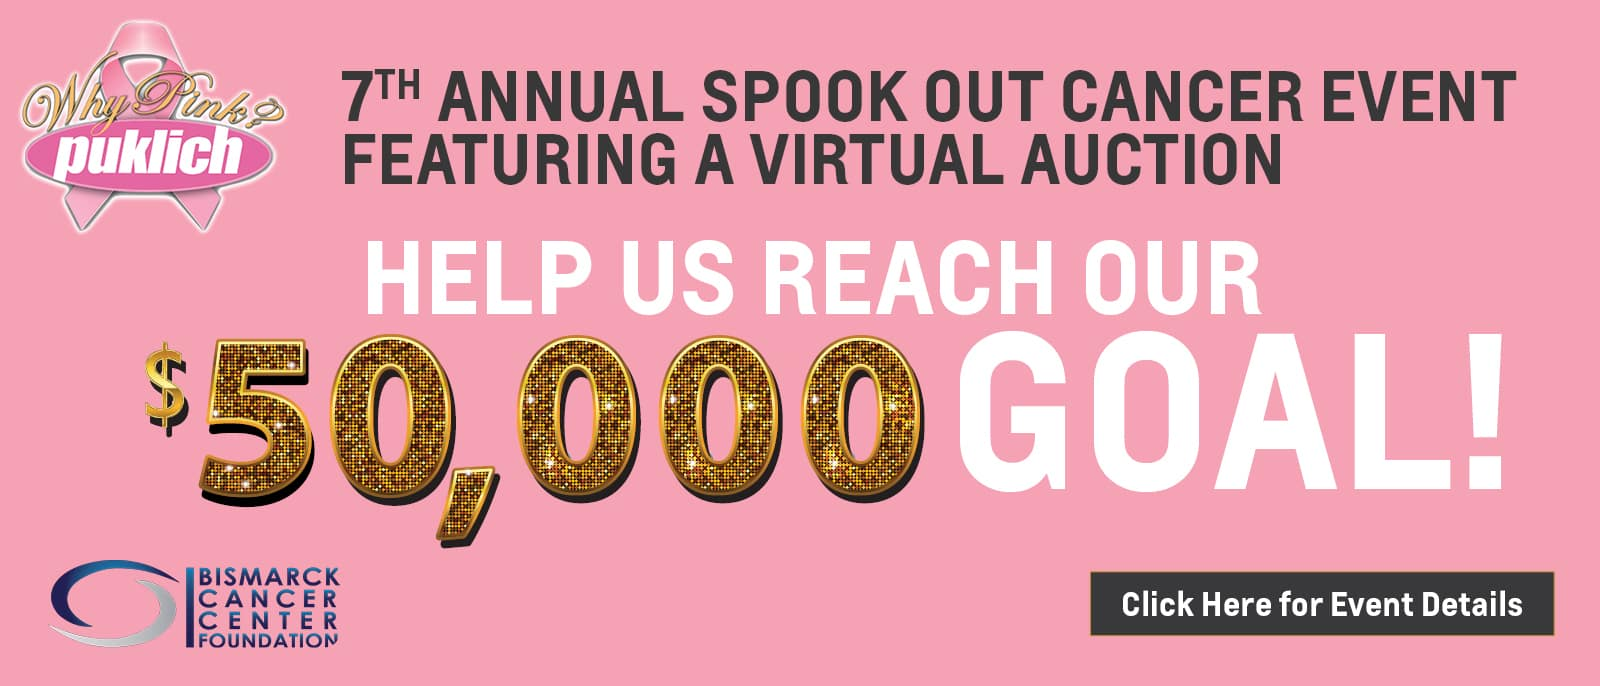 Spook Out Cancer Event